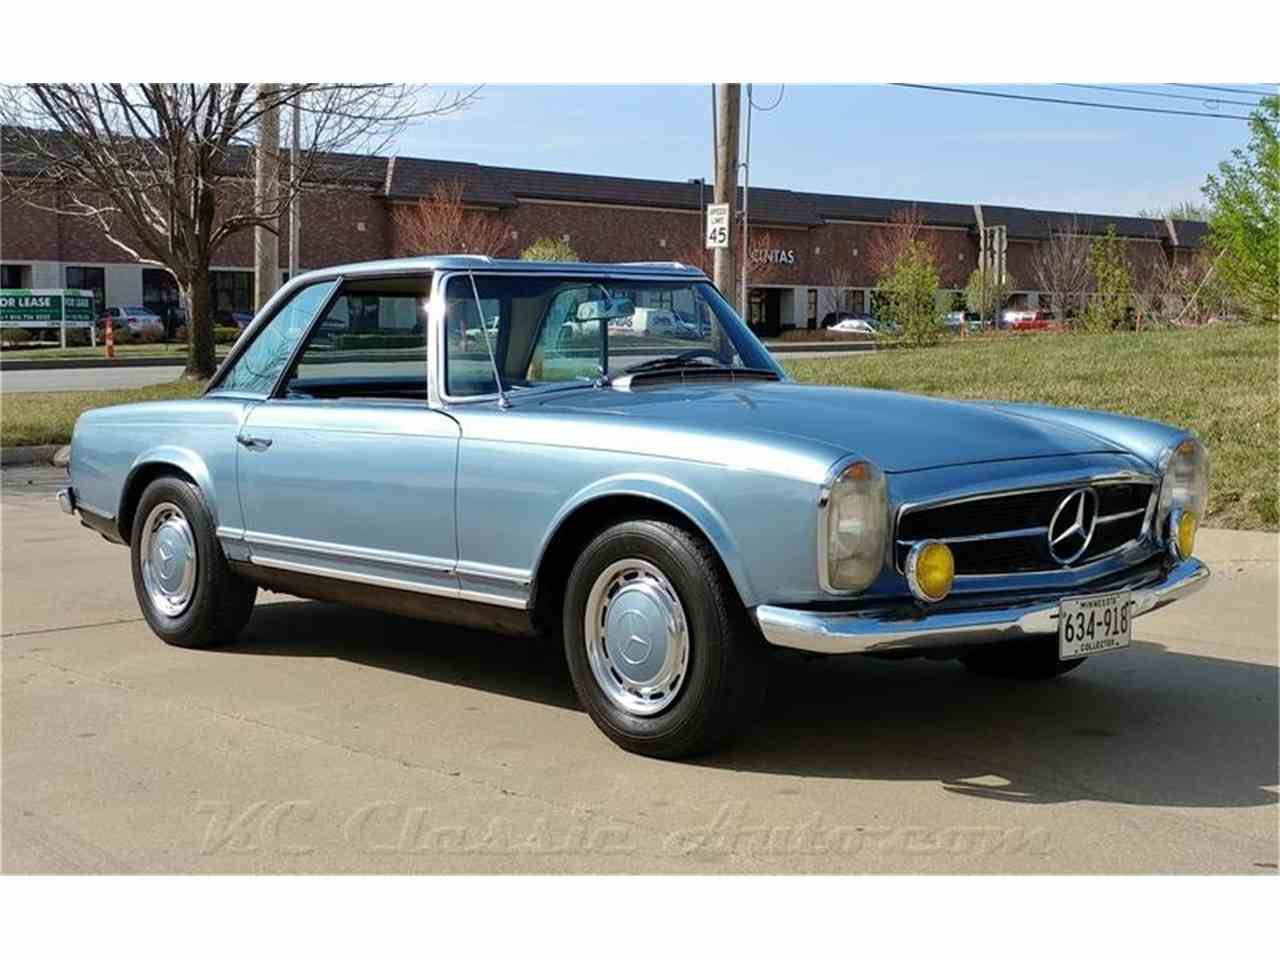 1967 mercedes benz 250sl pending deal for sale for Mercedes benz of kc